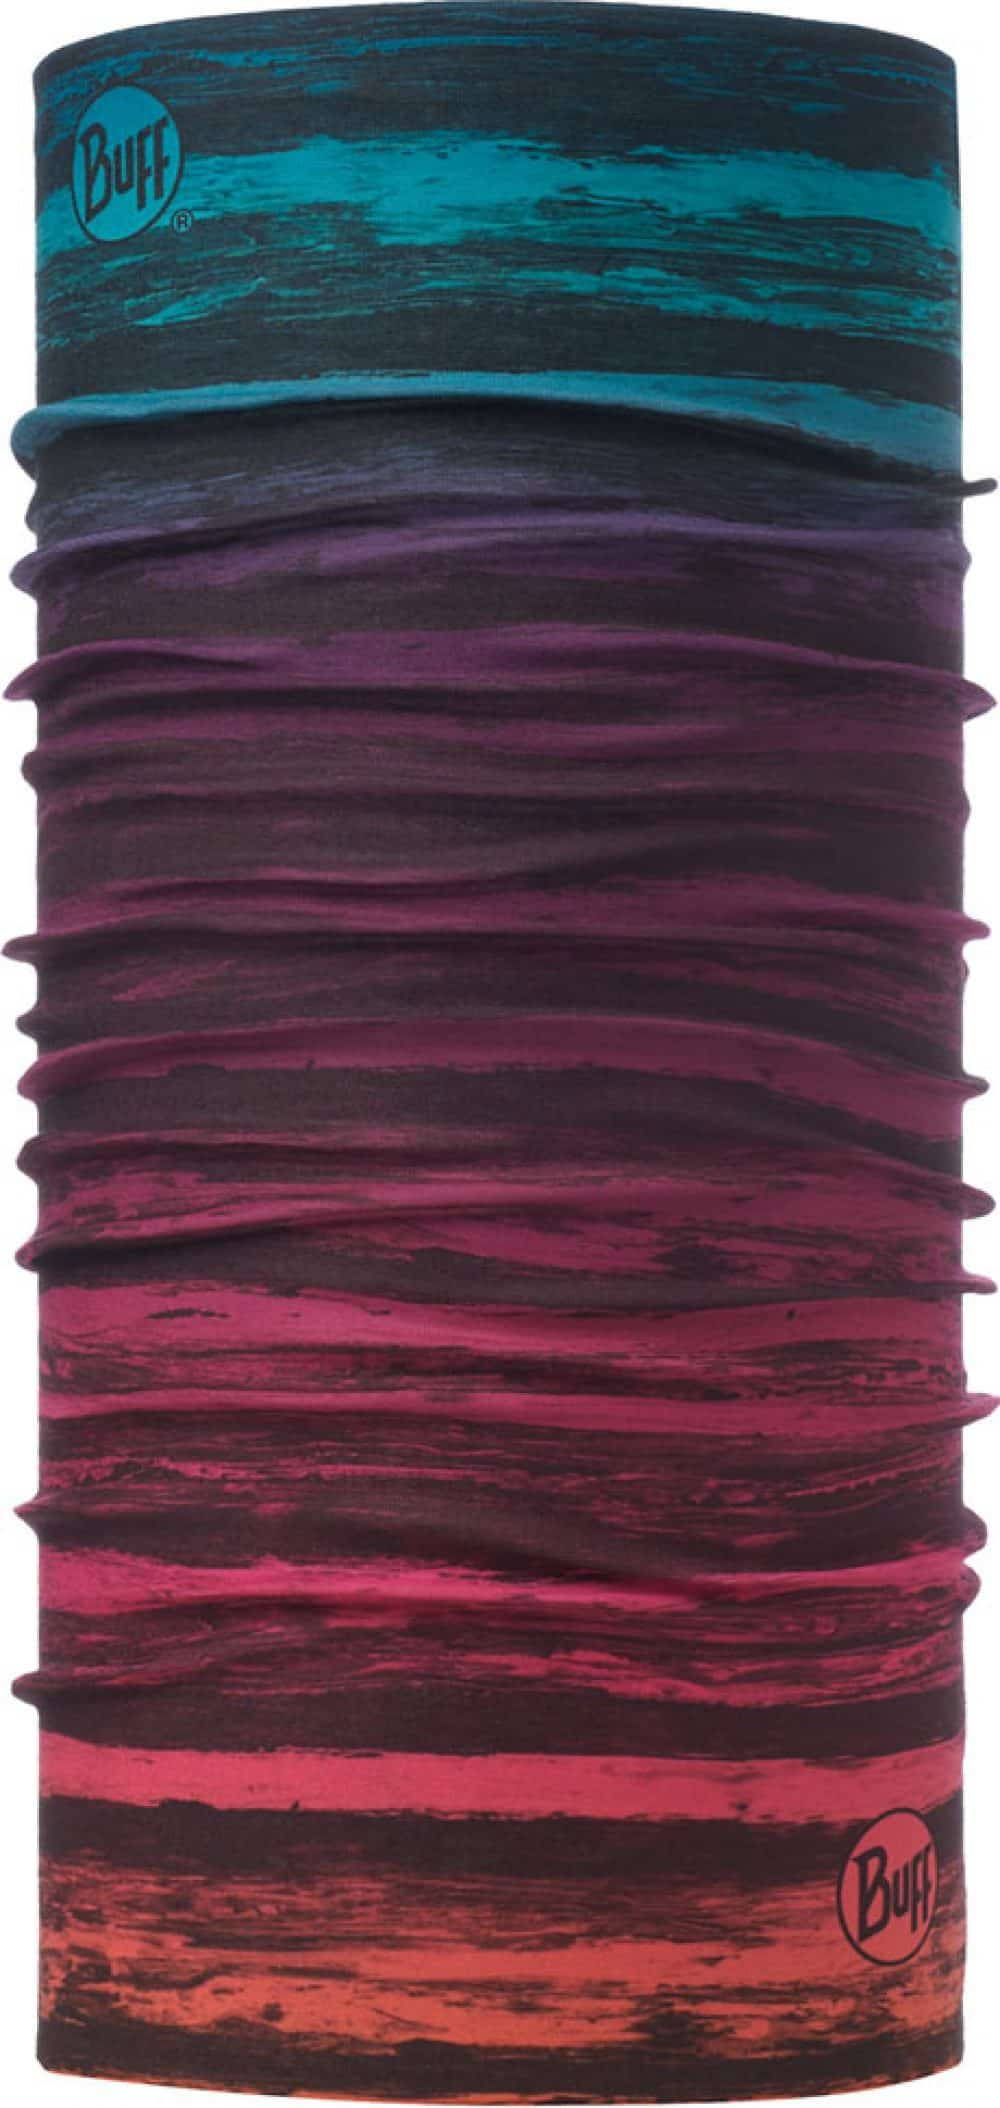 "Studio photo of the Original Buff® Design ""Karlin Mardi Grape"". Source: buff.eu"